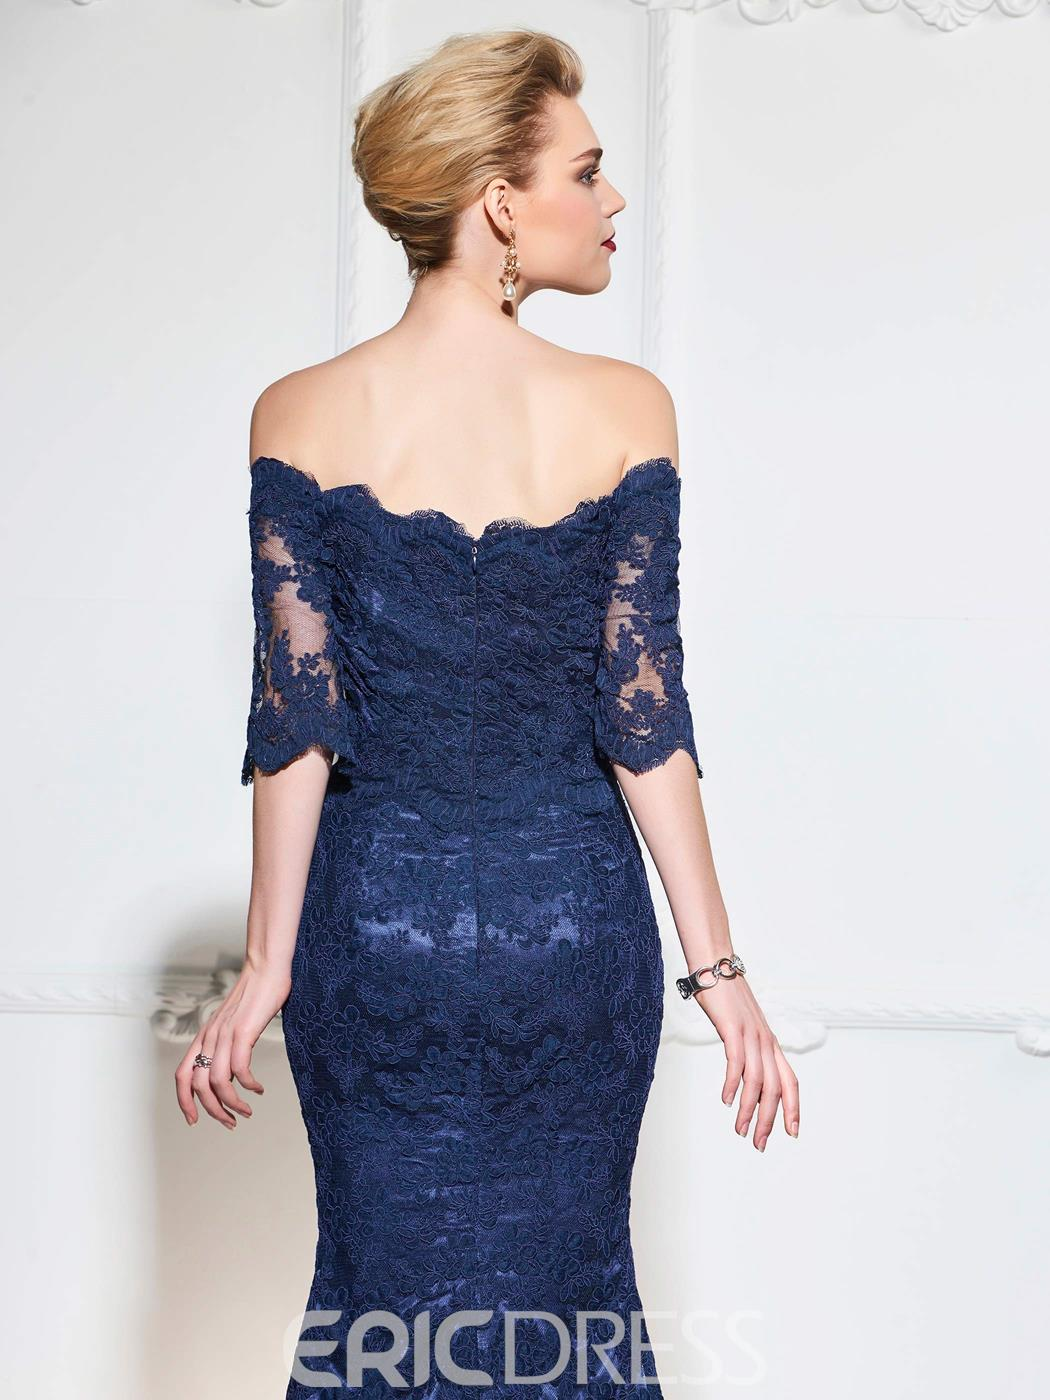 Ericdress Off The Shoulder Half Sleeve Lace Mermaid Evening Dress